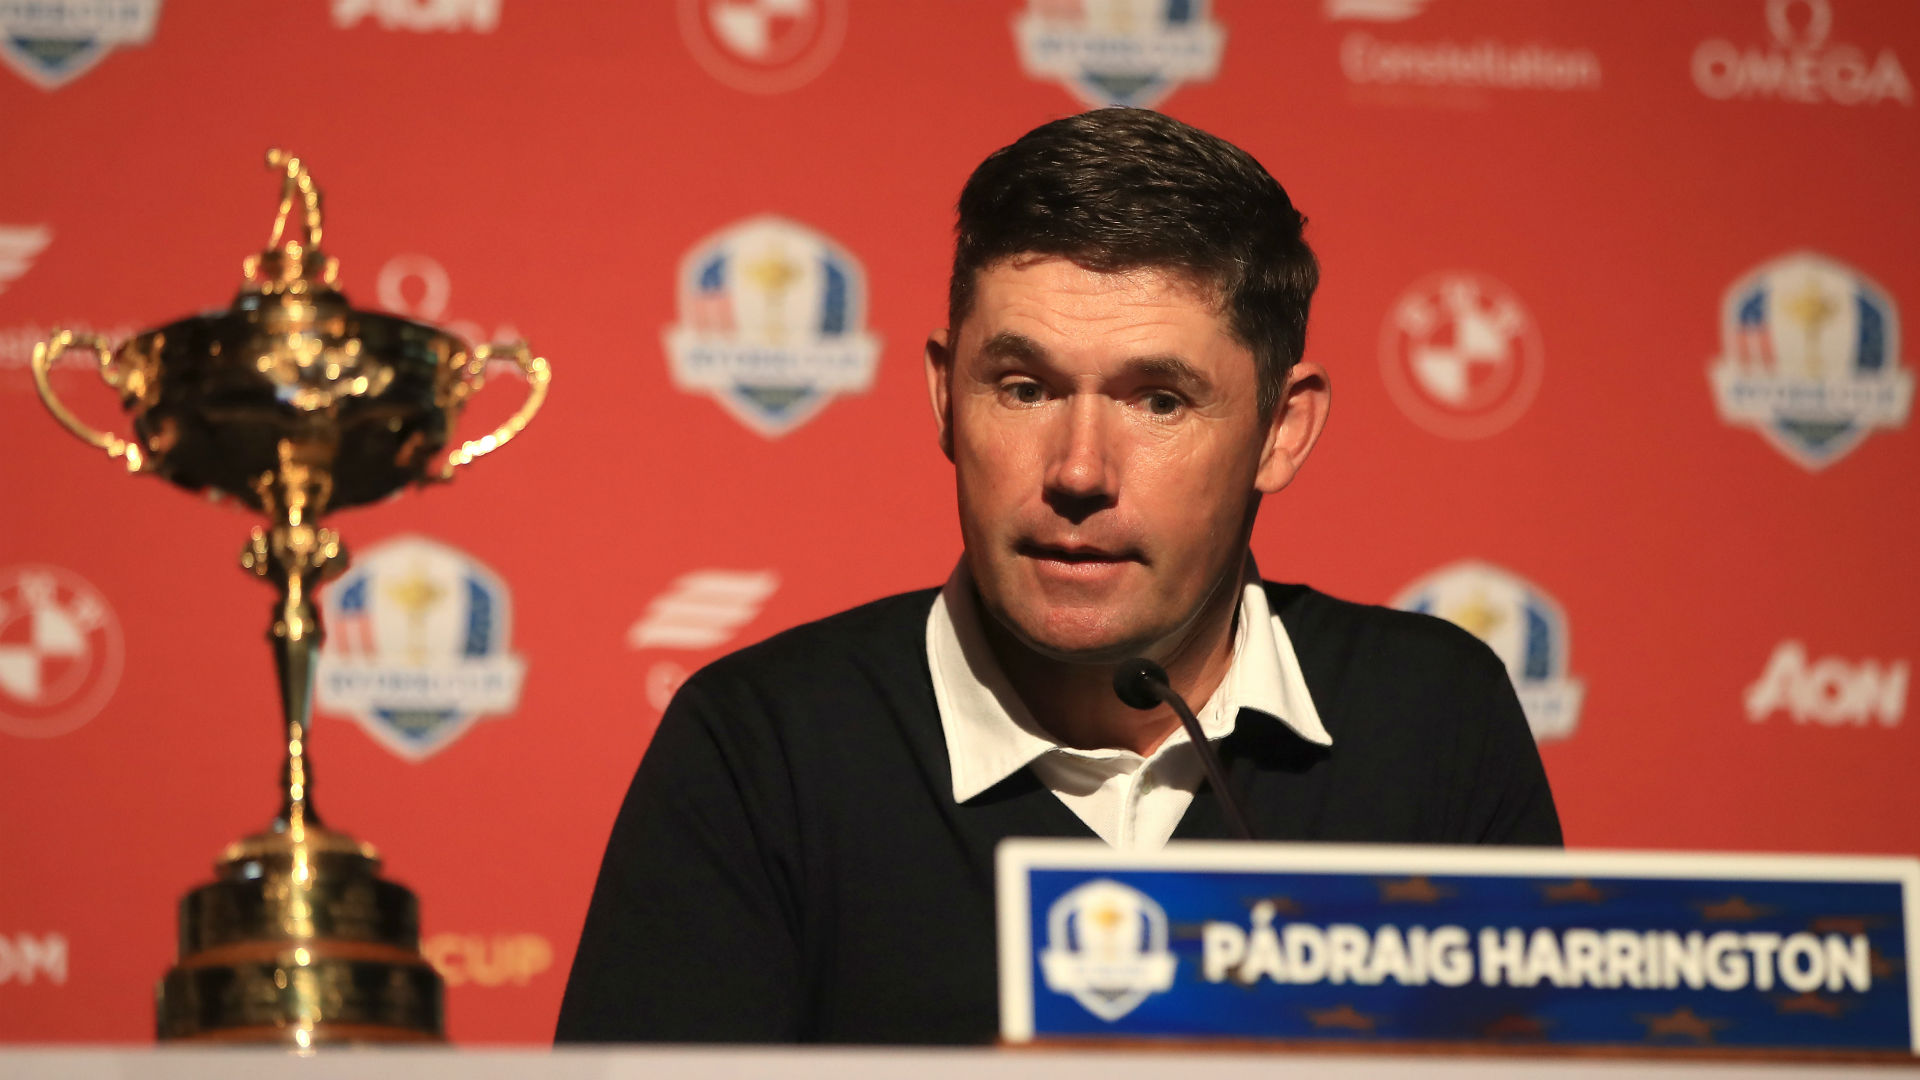 Harrington expects Ryder Cup players to be in peak condition after U.S. Open